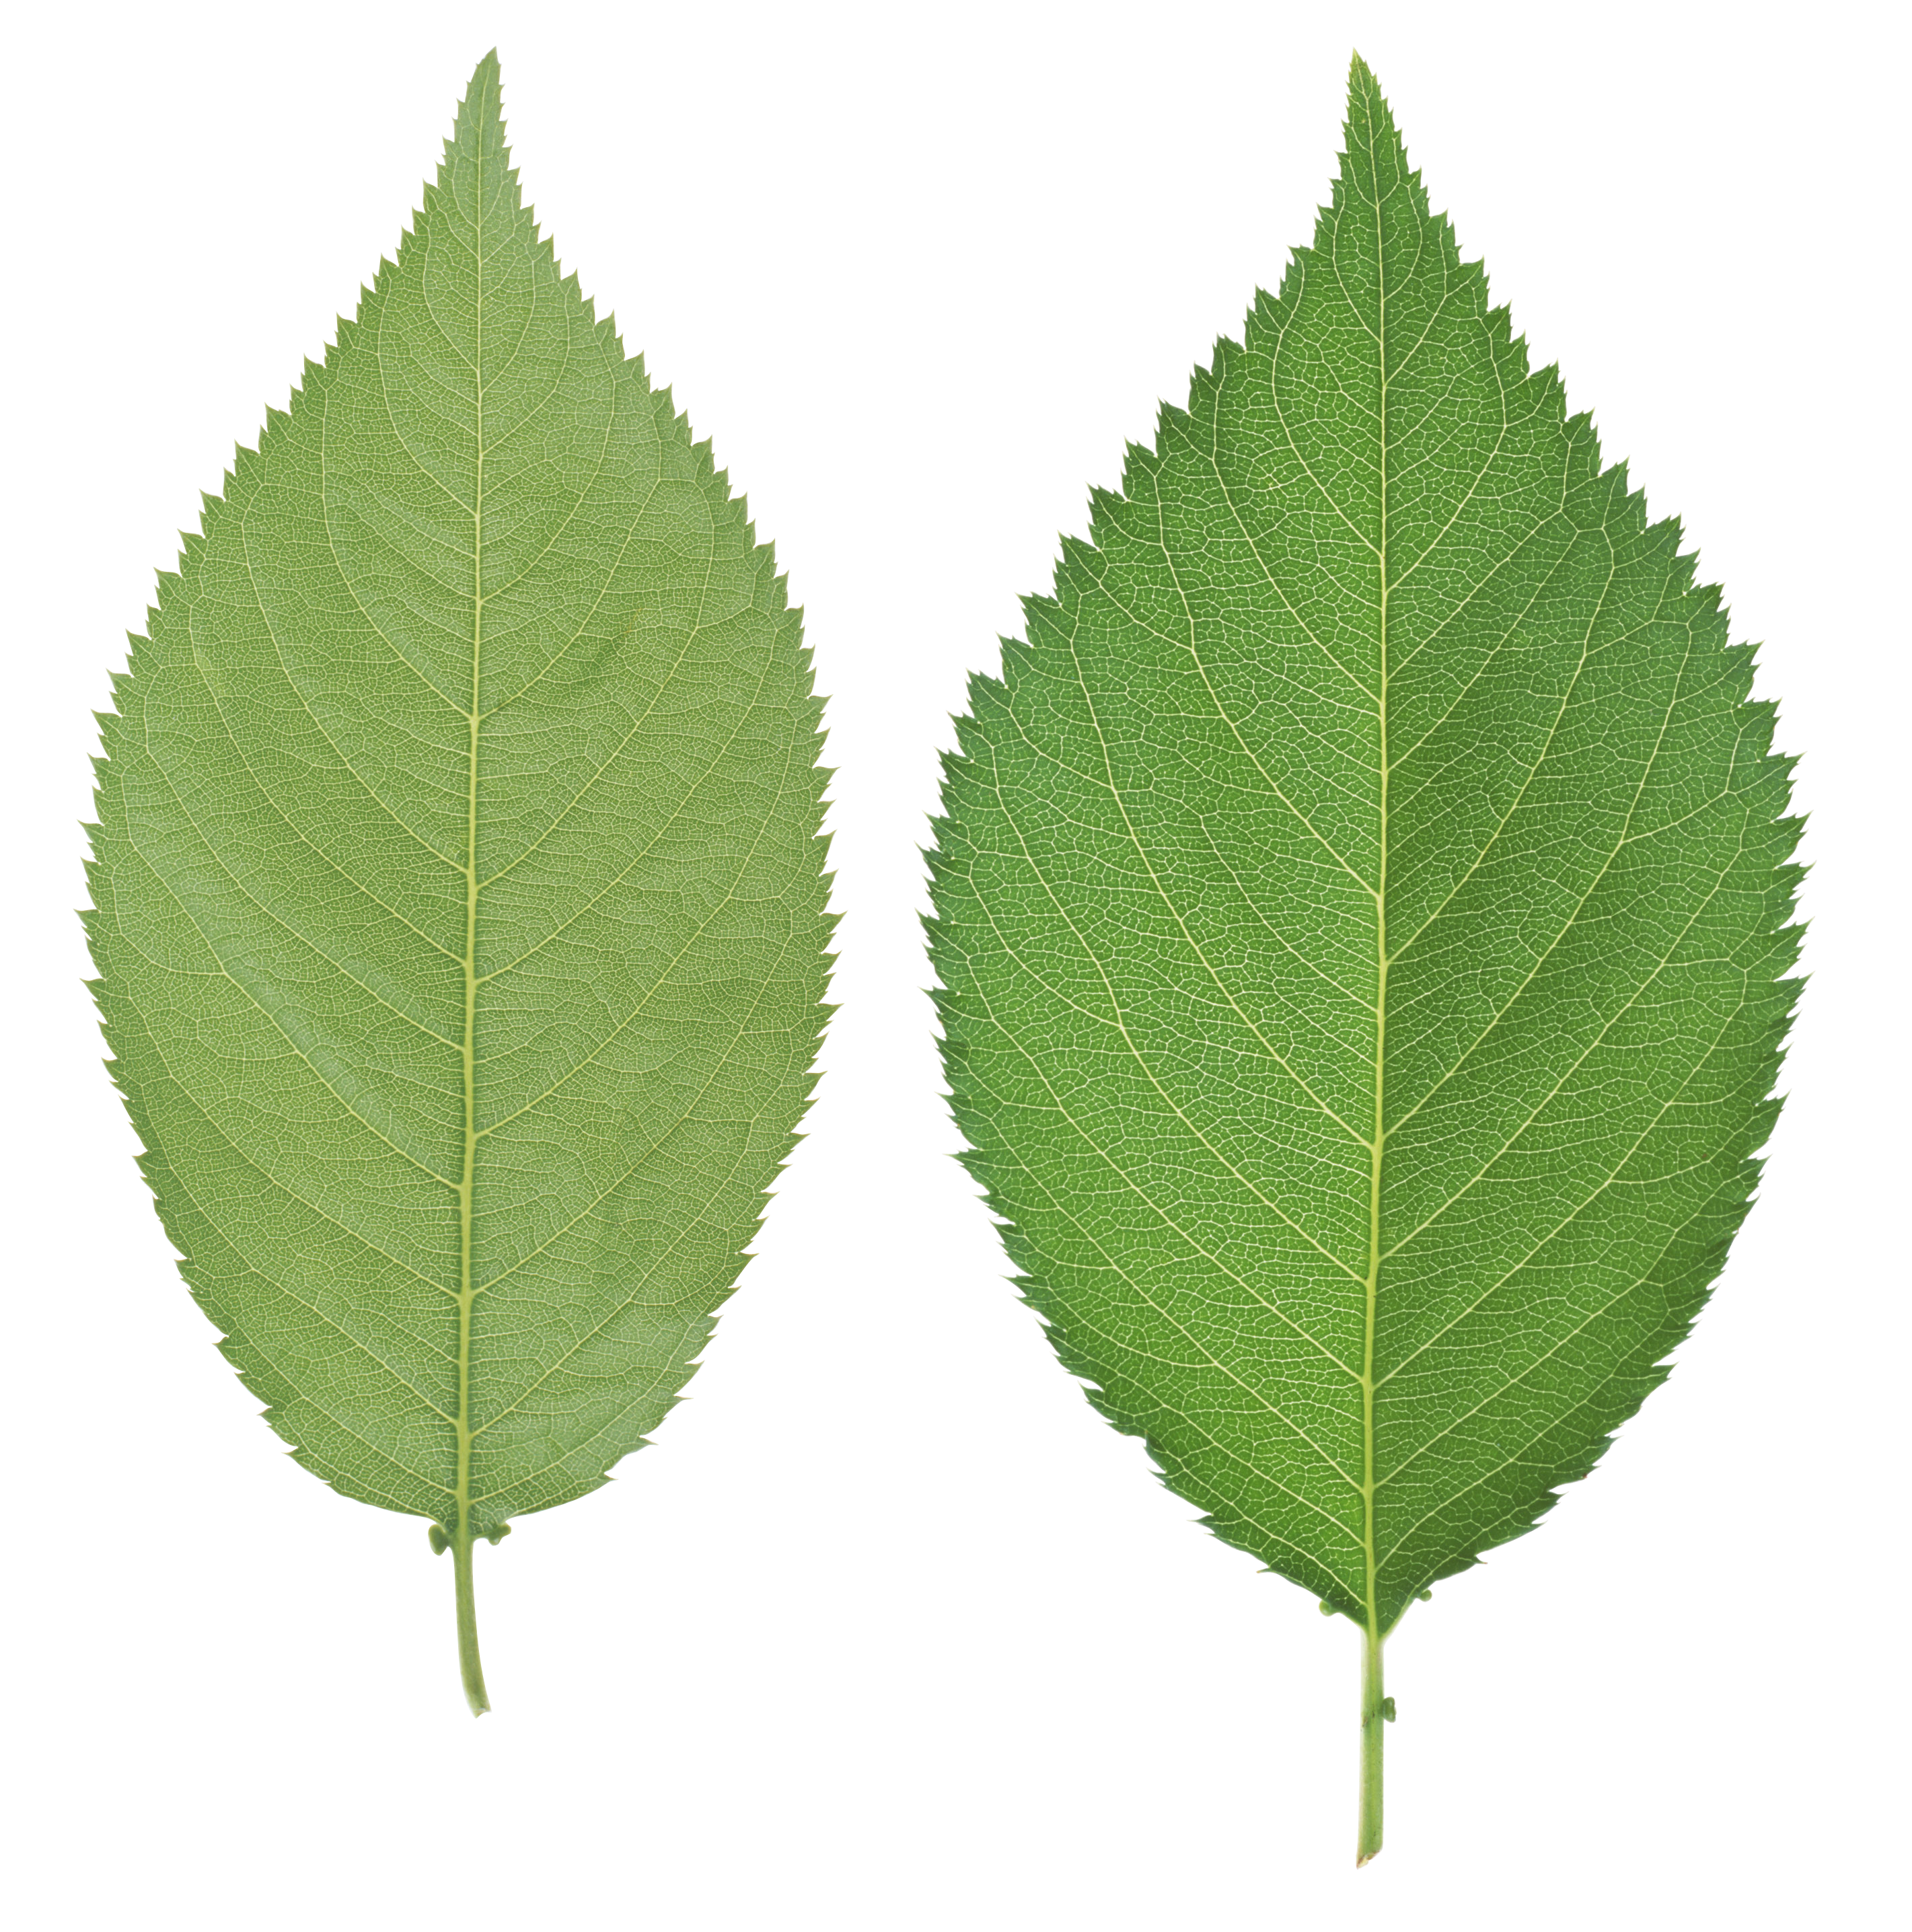 Green leaves PNG Image - PurePNG | Free transparent CC0 ...